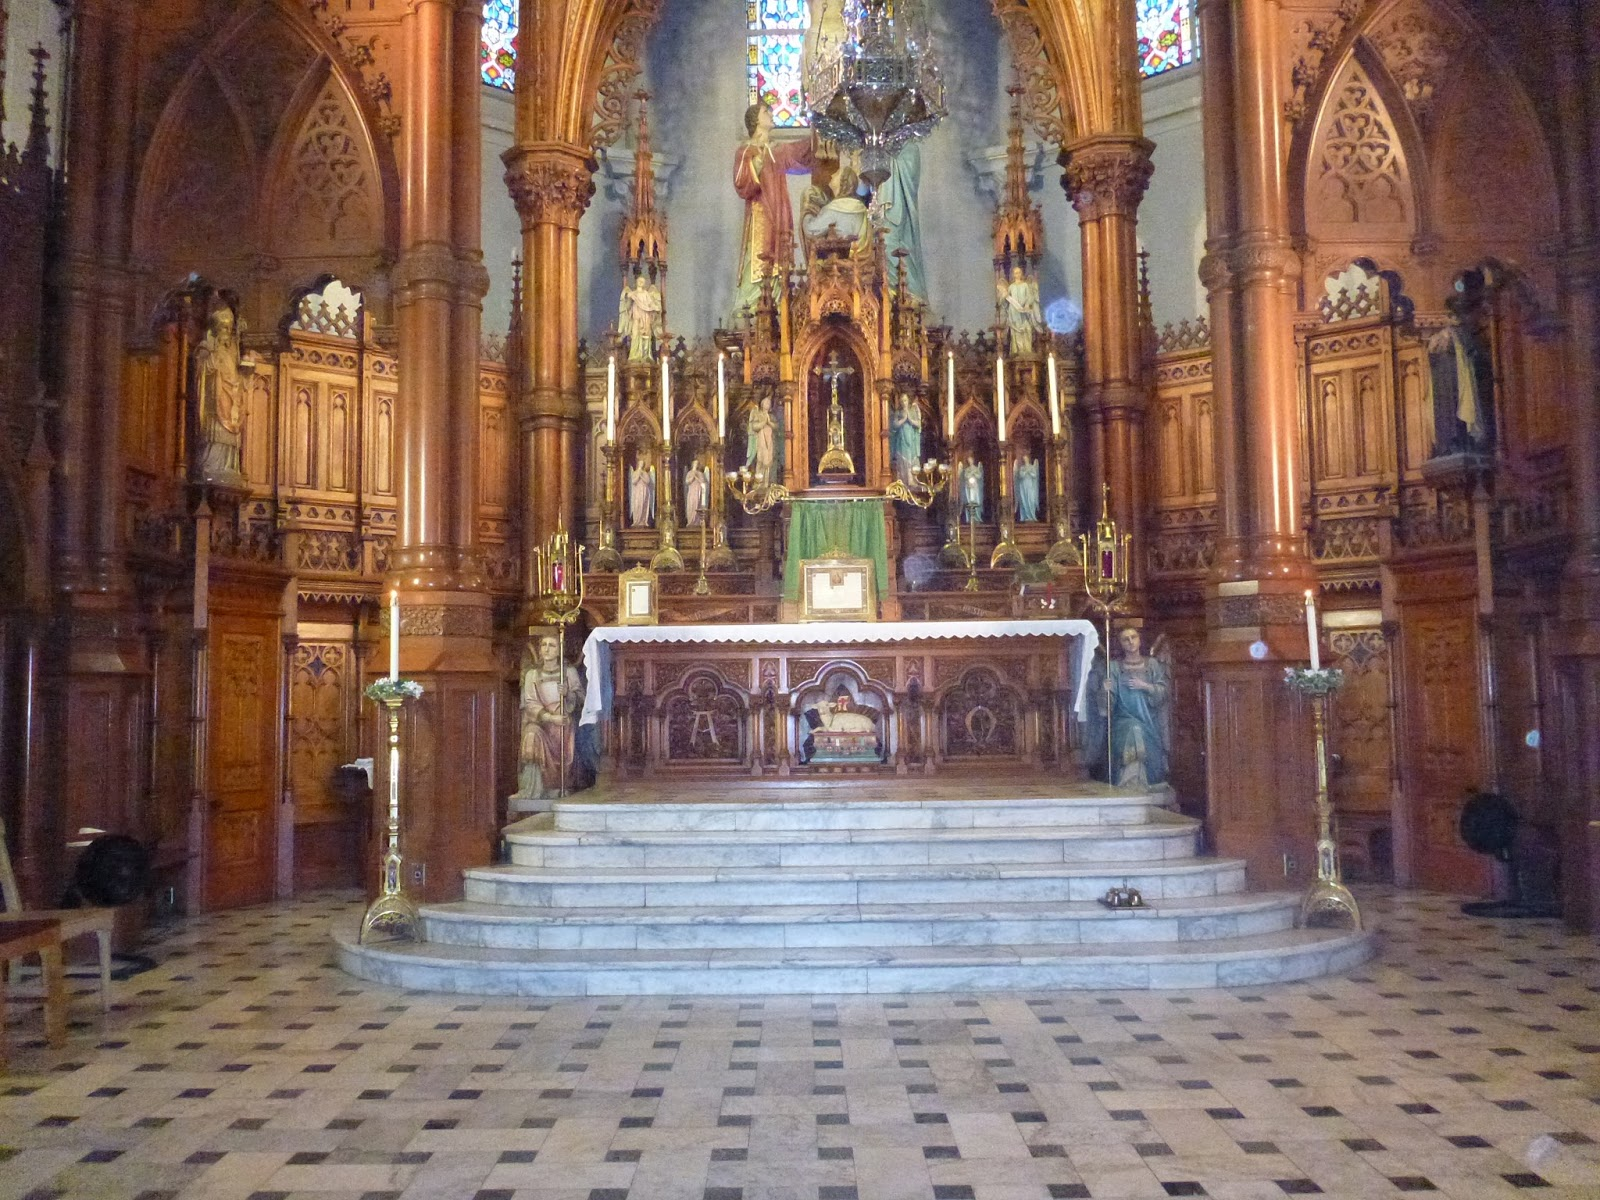 The High Altar And Other Altars Around Traditional Catholic Churches